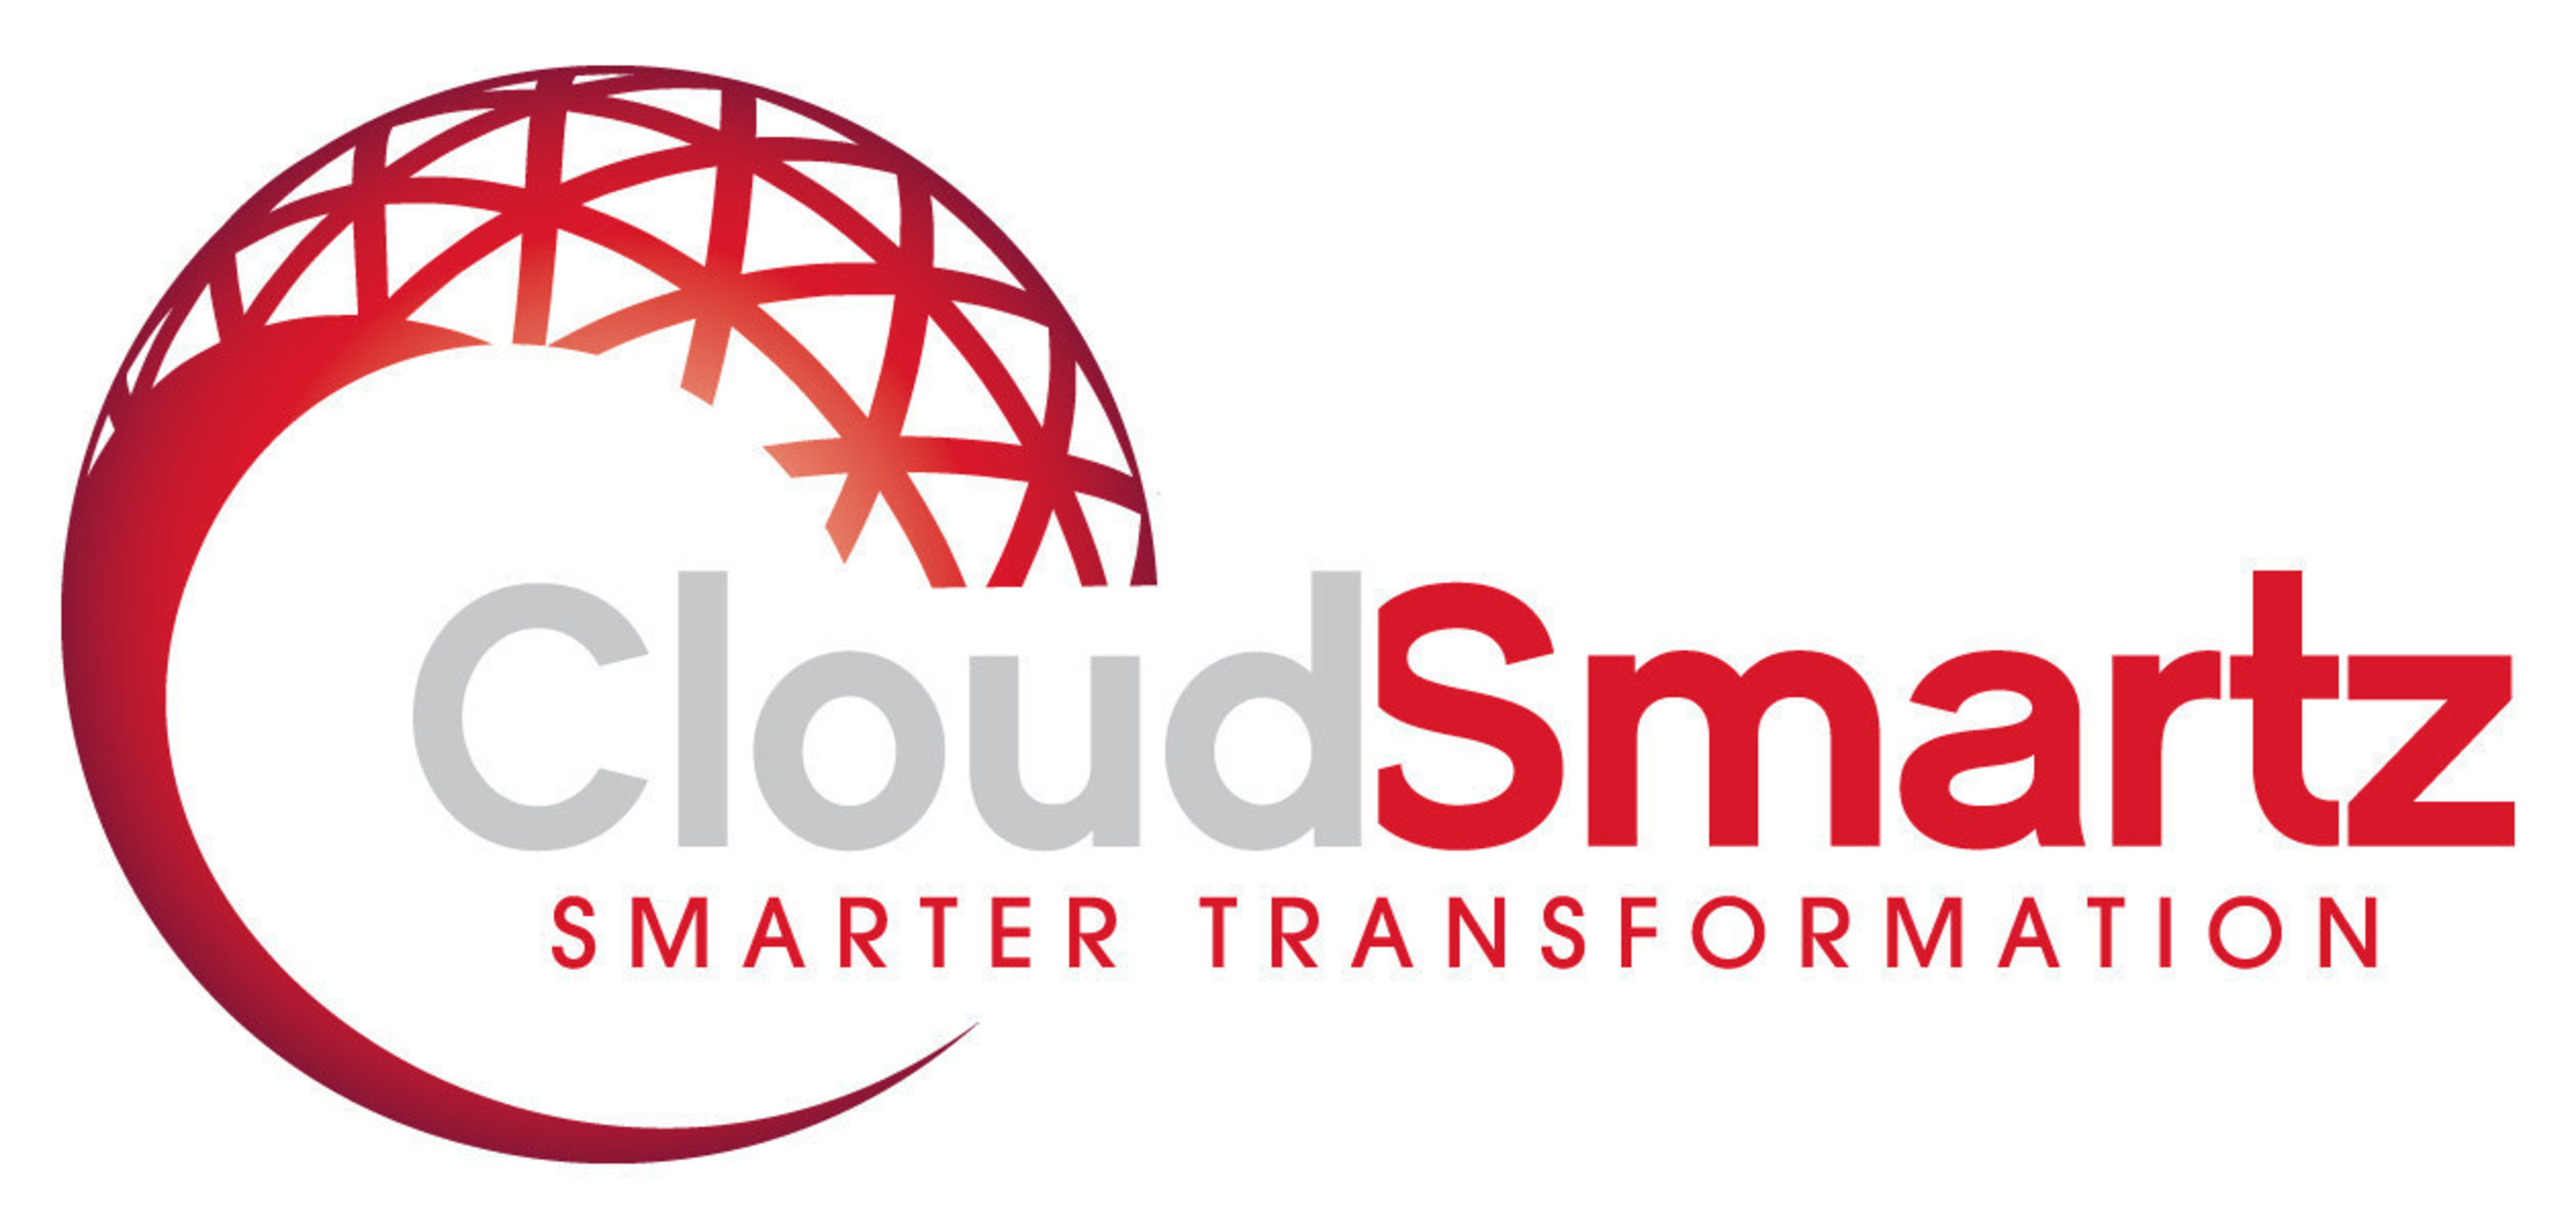 CloudSmartz Introduces CloudSmartz SDxSuite to Service Providers Worldwide